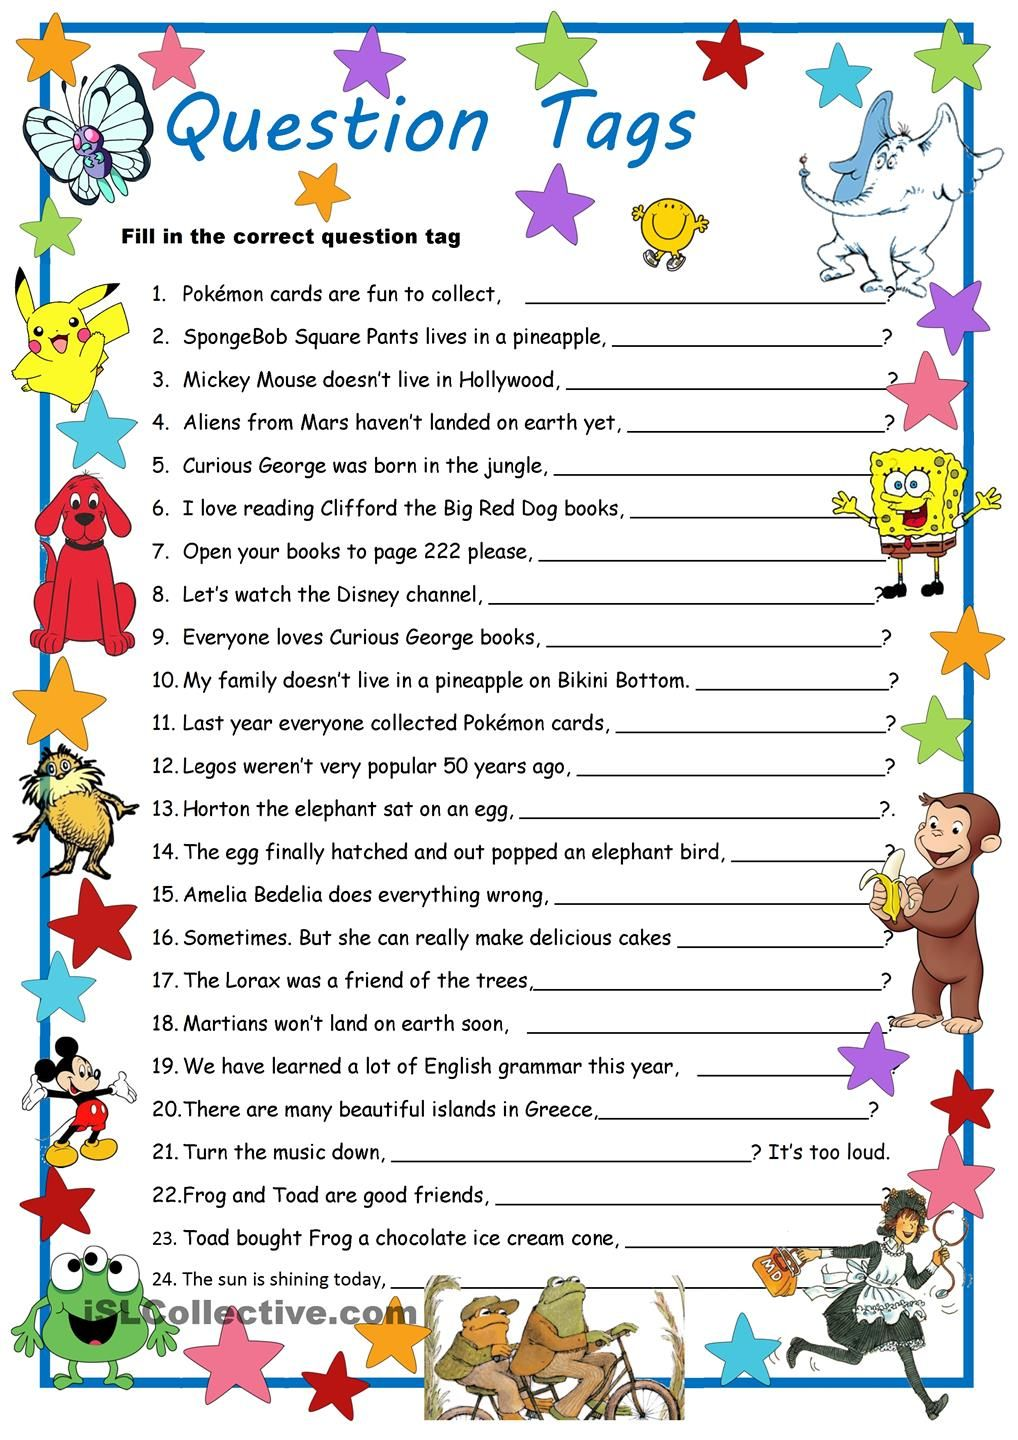 Curious George & Co. Meet Question Tags | Tag Questions | Pinterest ...